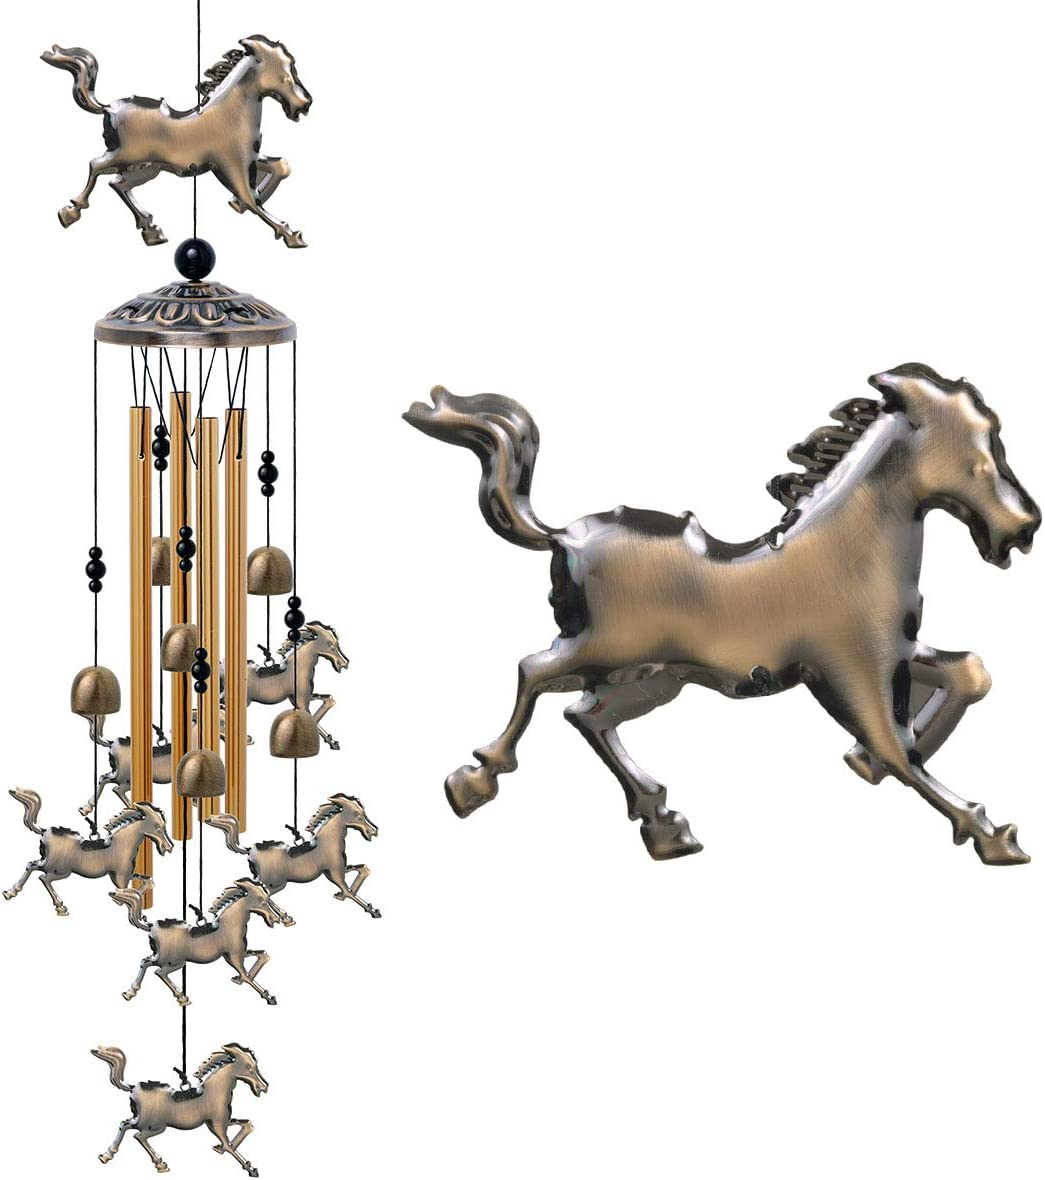 Horse Wind Chimes Decor - 37 Inch Pure Hand-Made Metal Musical Wind Bells With 4 Aluminum Tubes 6 Bells 7 Horses Mobile Wind Catcher Romantic Wind Chime for Home, Festival, Indoor/Outdoor Decoration